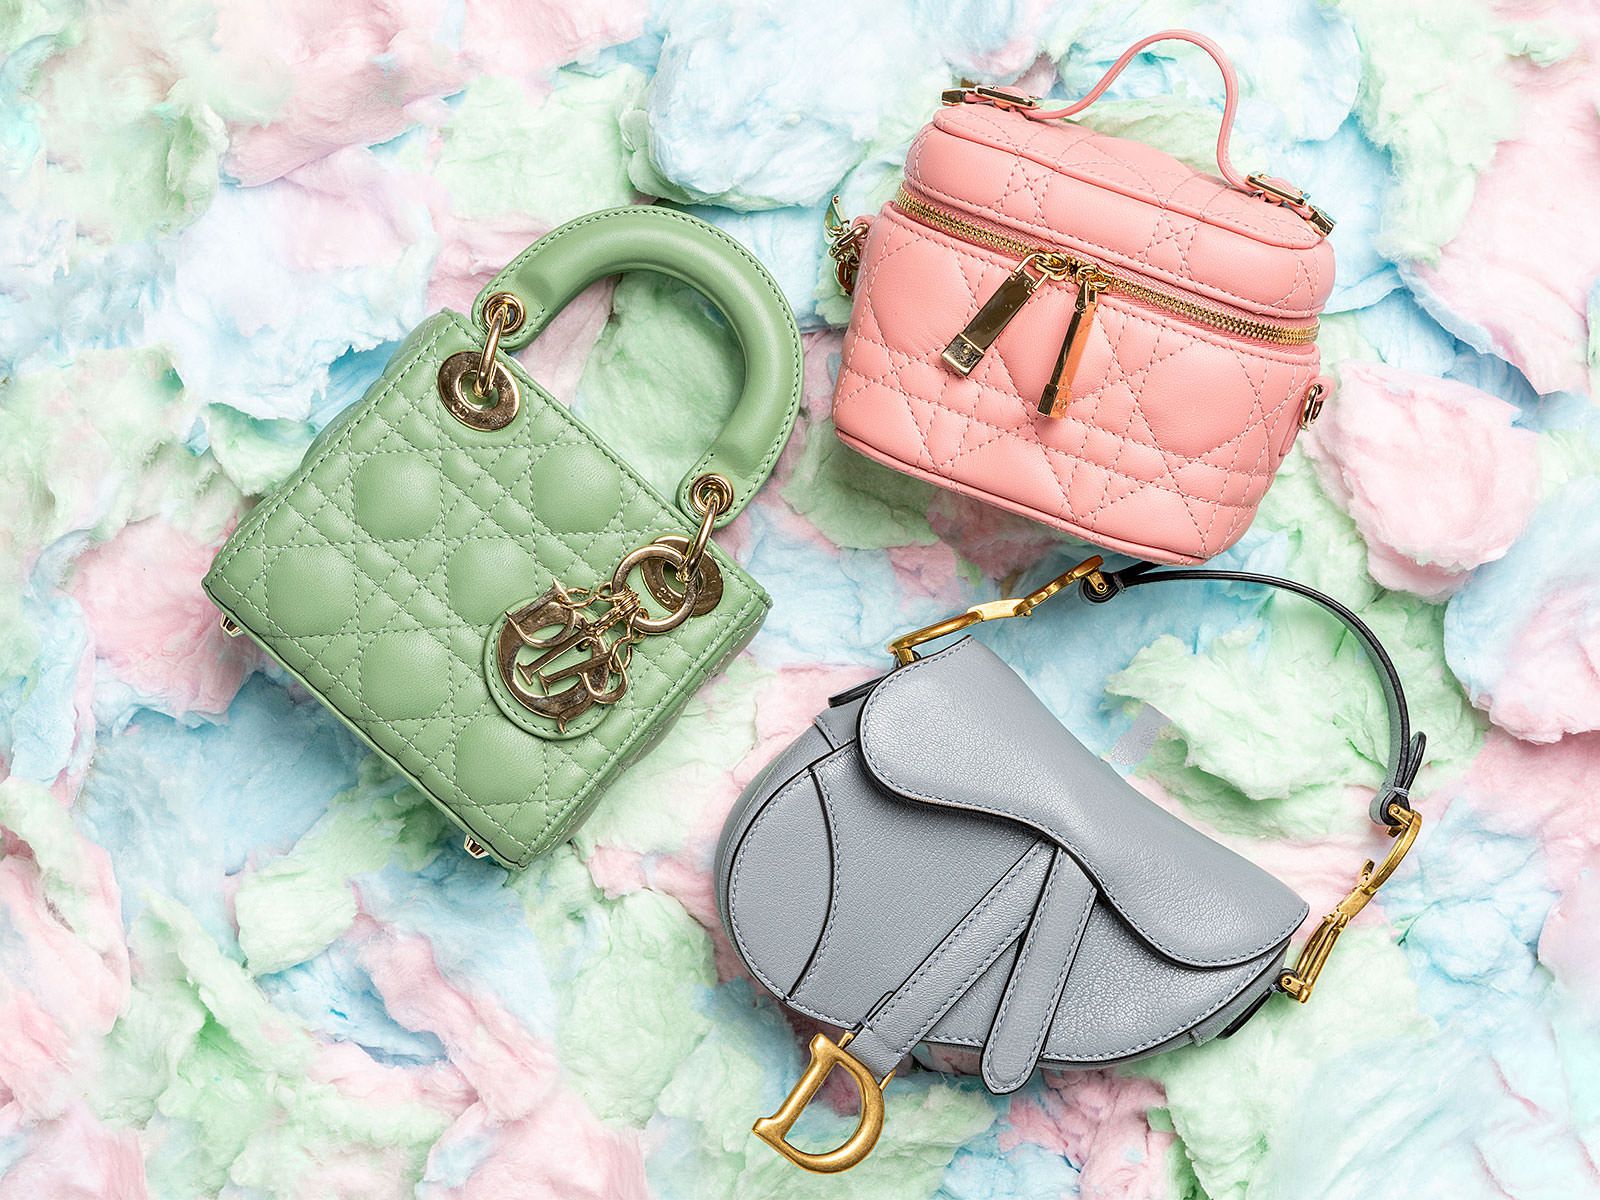 Dior Micro Bags Feature